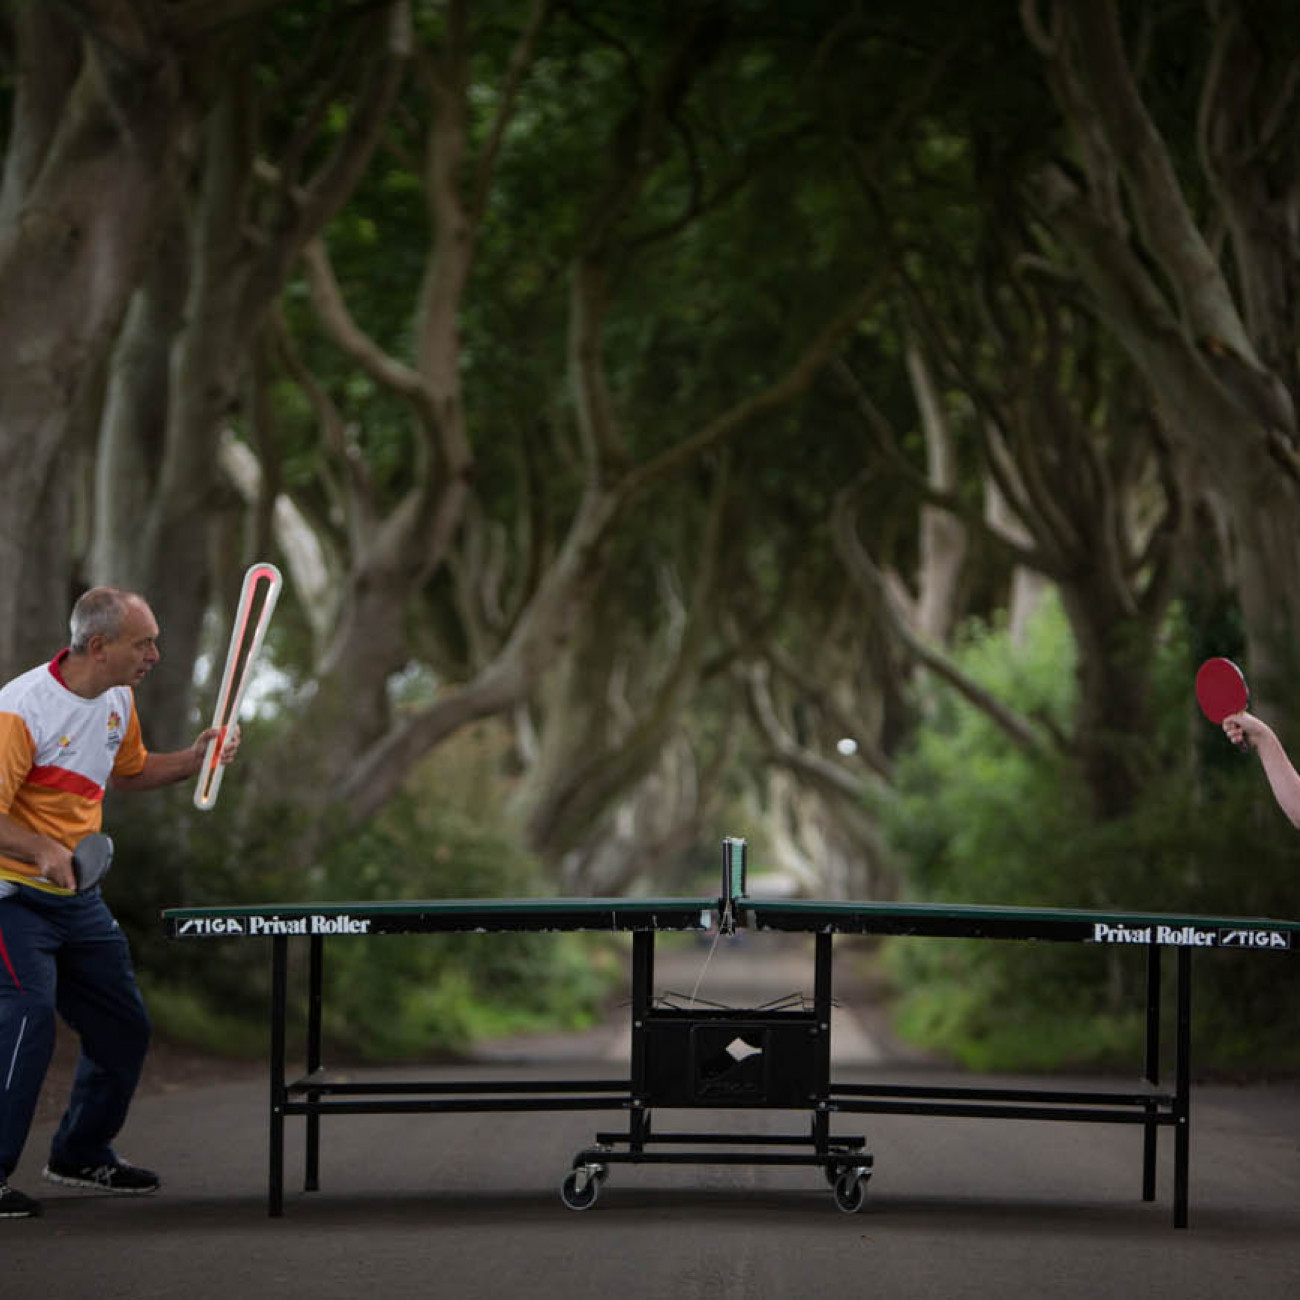 The Queen's Baton, carried by Ulster Table Tennis Club's John Fall (on left) and Colm Darragh, photographed at the Dark Hedges, known as the 'King's Road' location in the HBO's TV series Game of Thrones, in Stranocum, in Northern Ireland, on 29 August 201